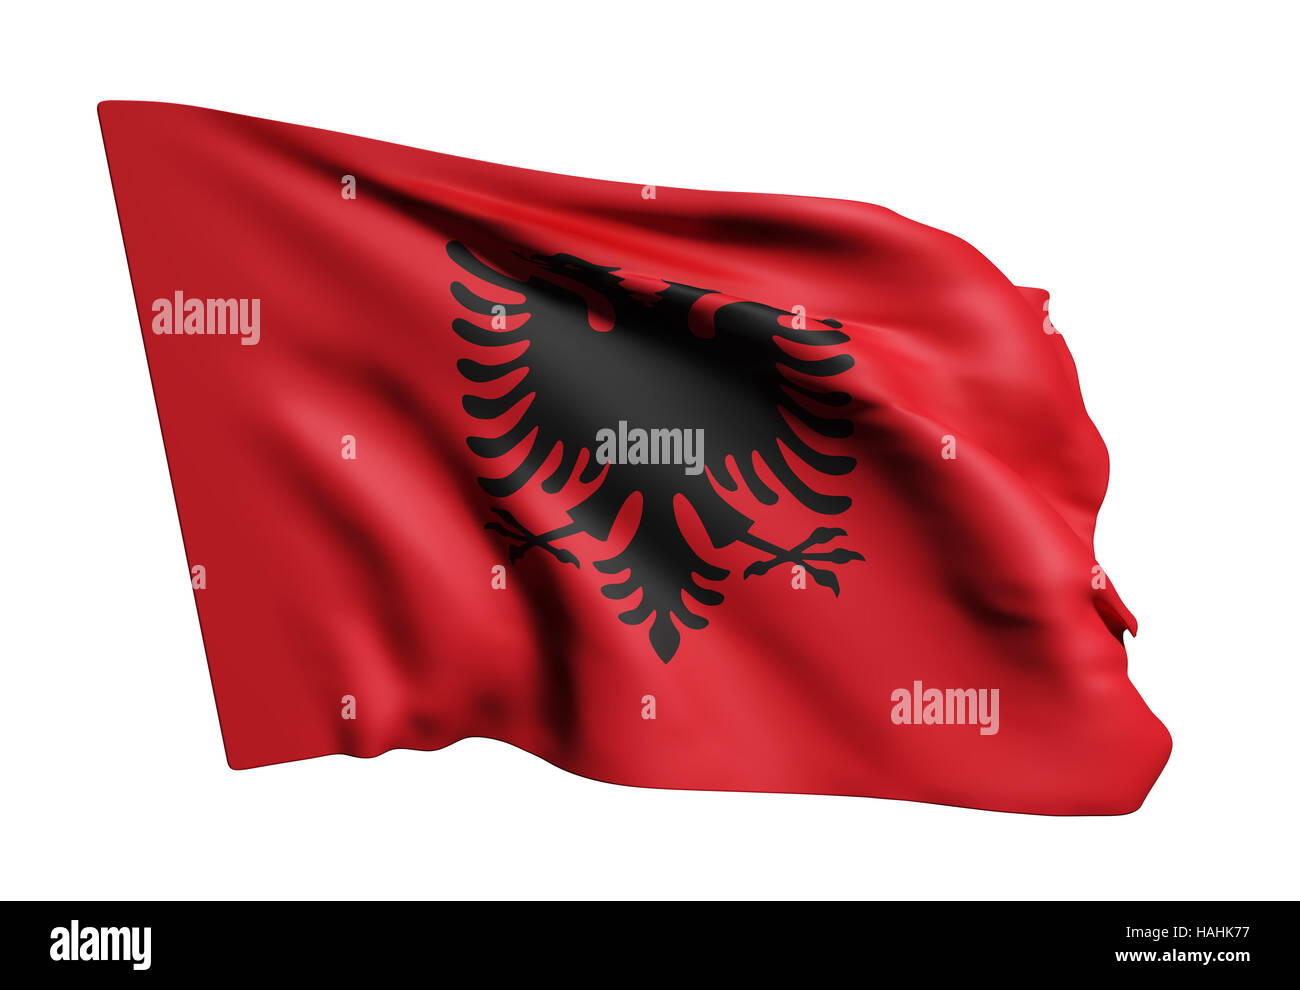 3d rendering of an Albania flag on white background. - Stock Image